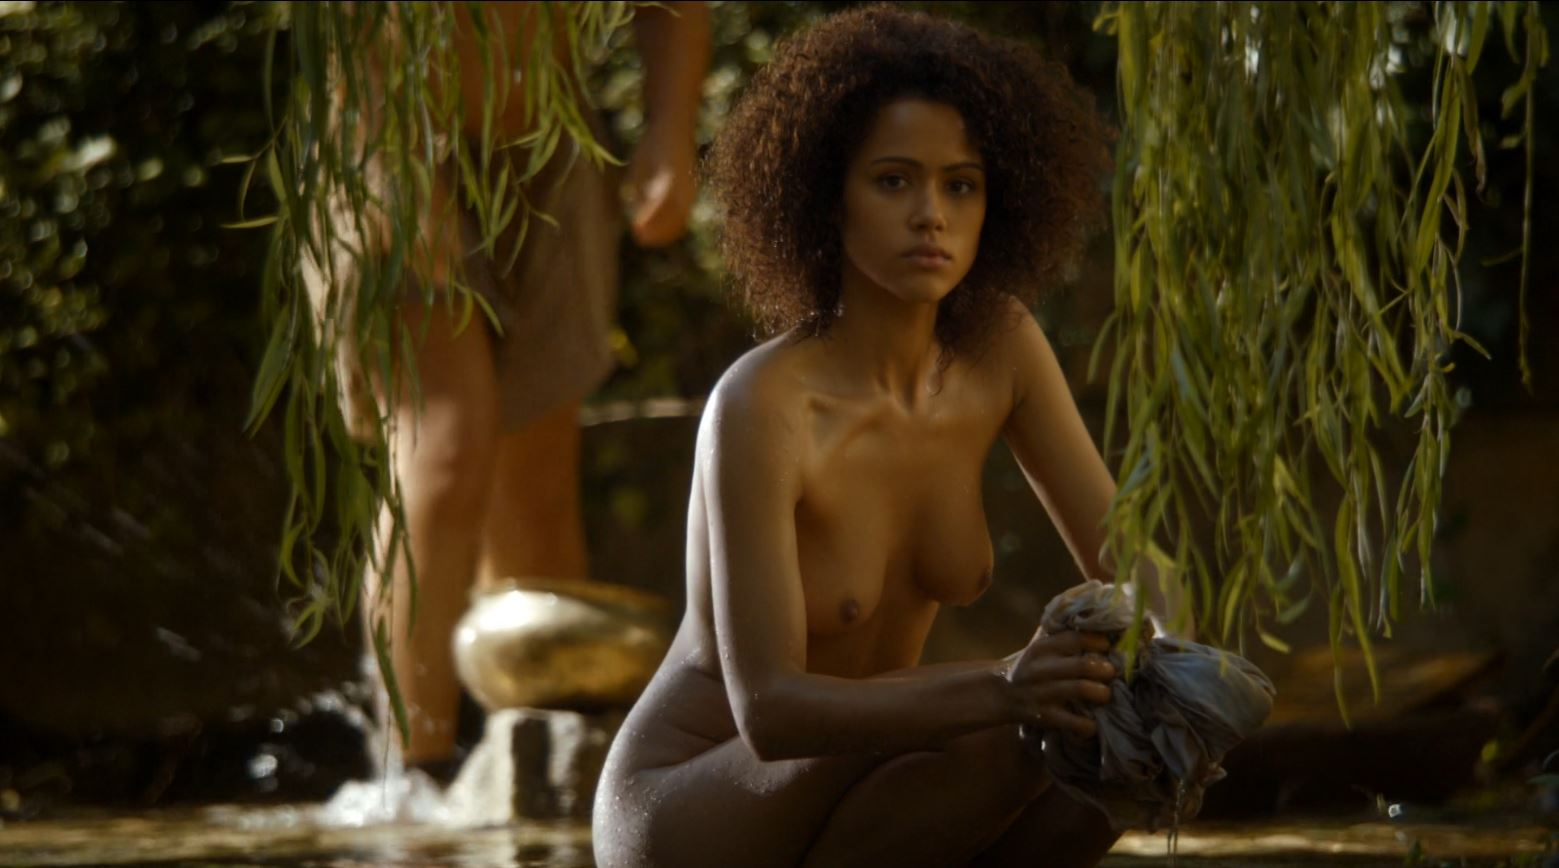 Game of Thrones 'The Mountain and The Viper' Review http://scifiempire.net Game Of Thrones - Missandei nude (Nathalie Emmanuel)